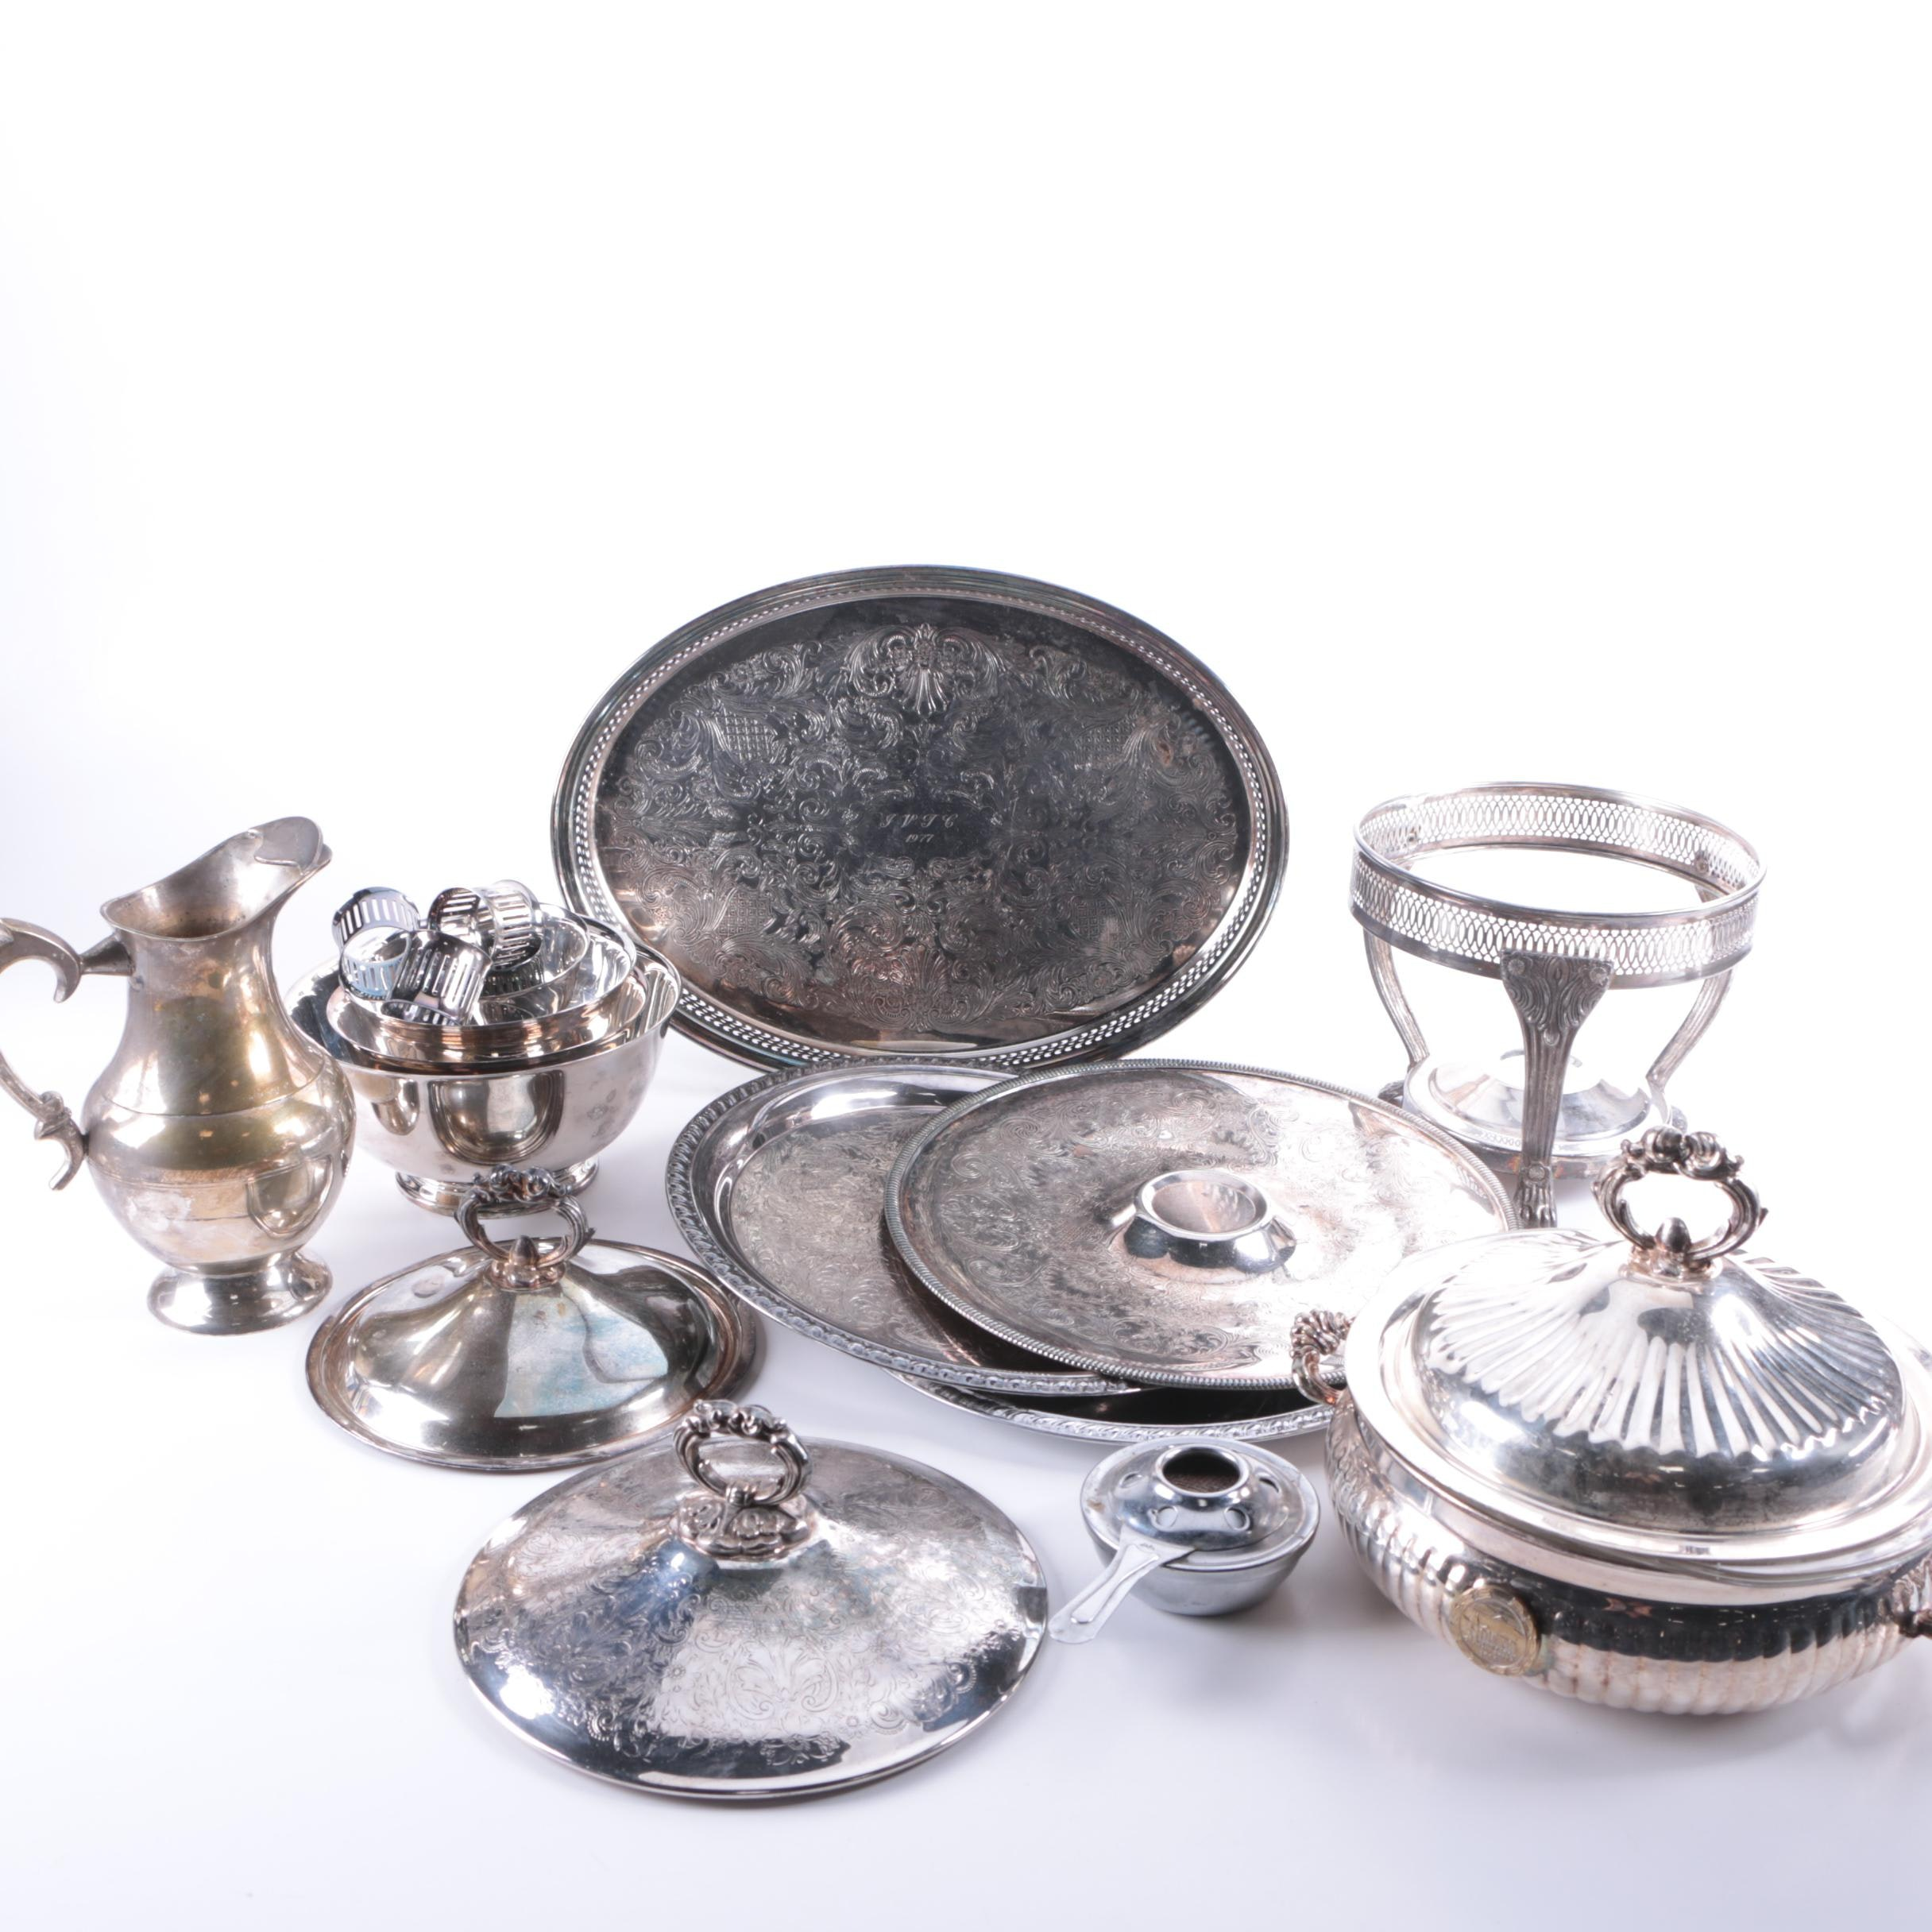 Silver Plate Paul Revere Style Bowls and Assorted Silver Plate Serveware